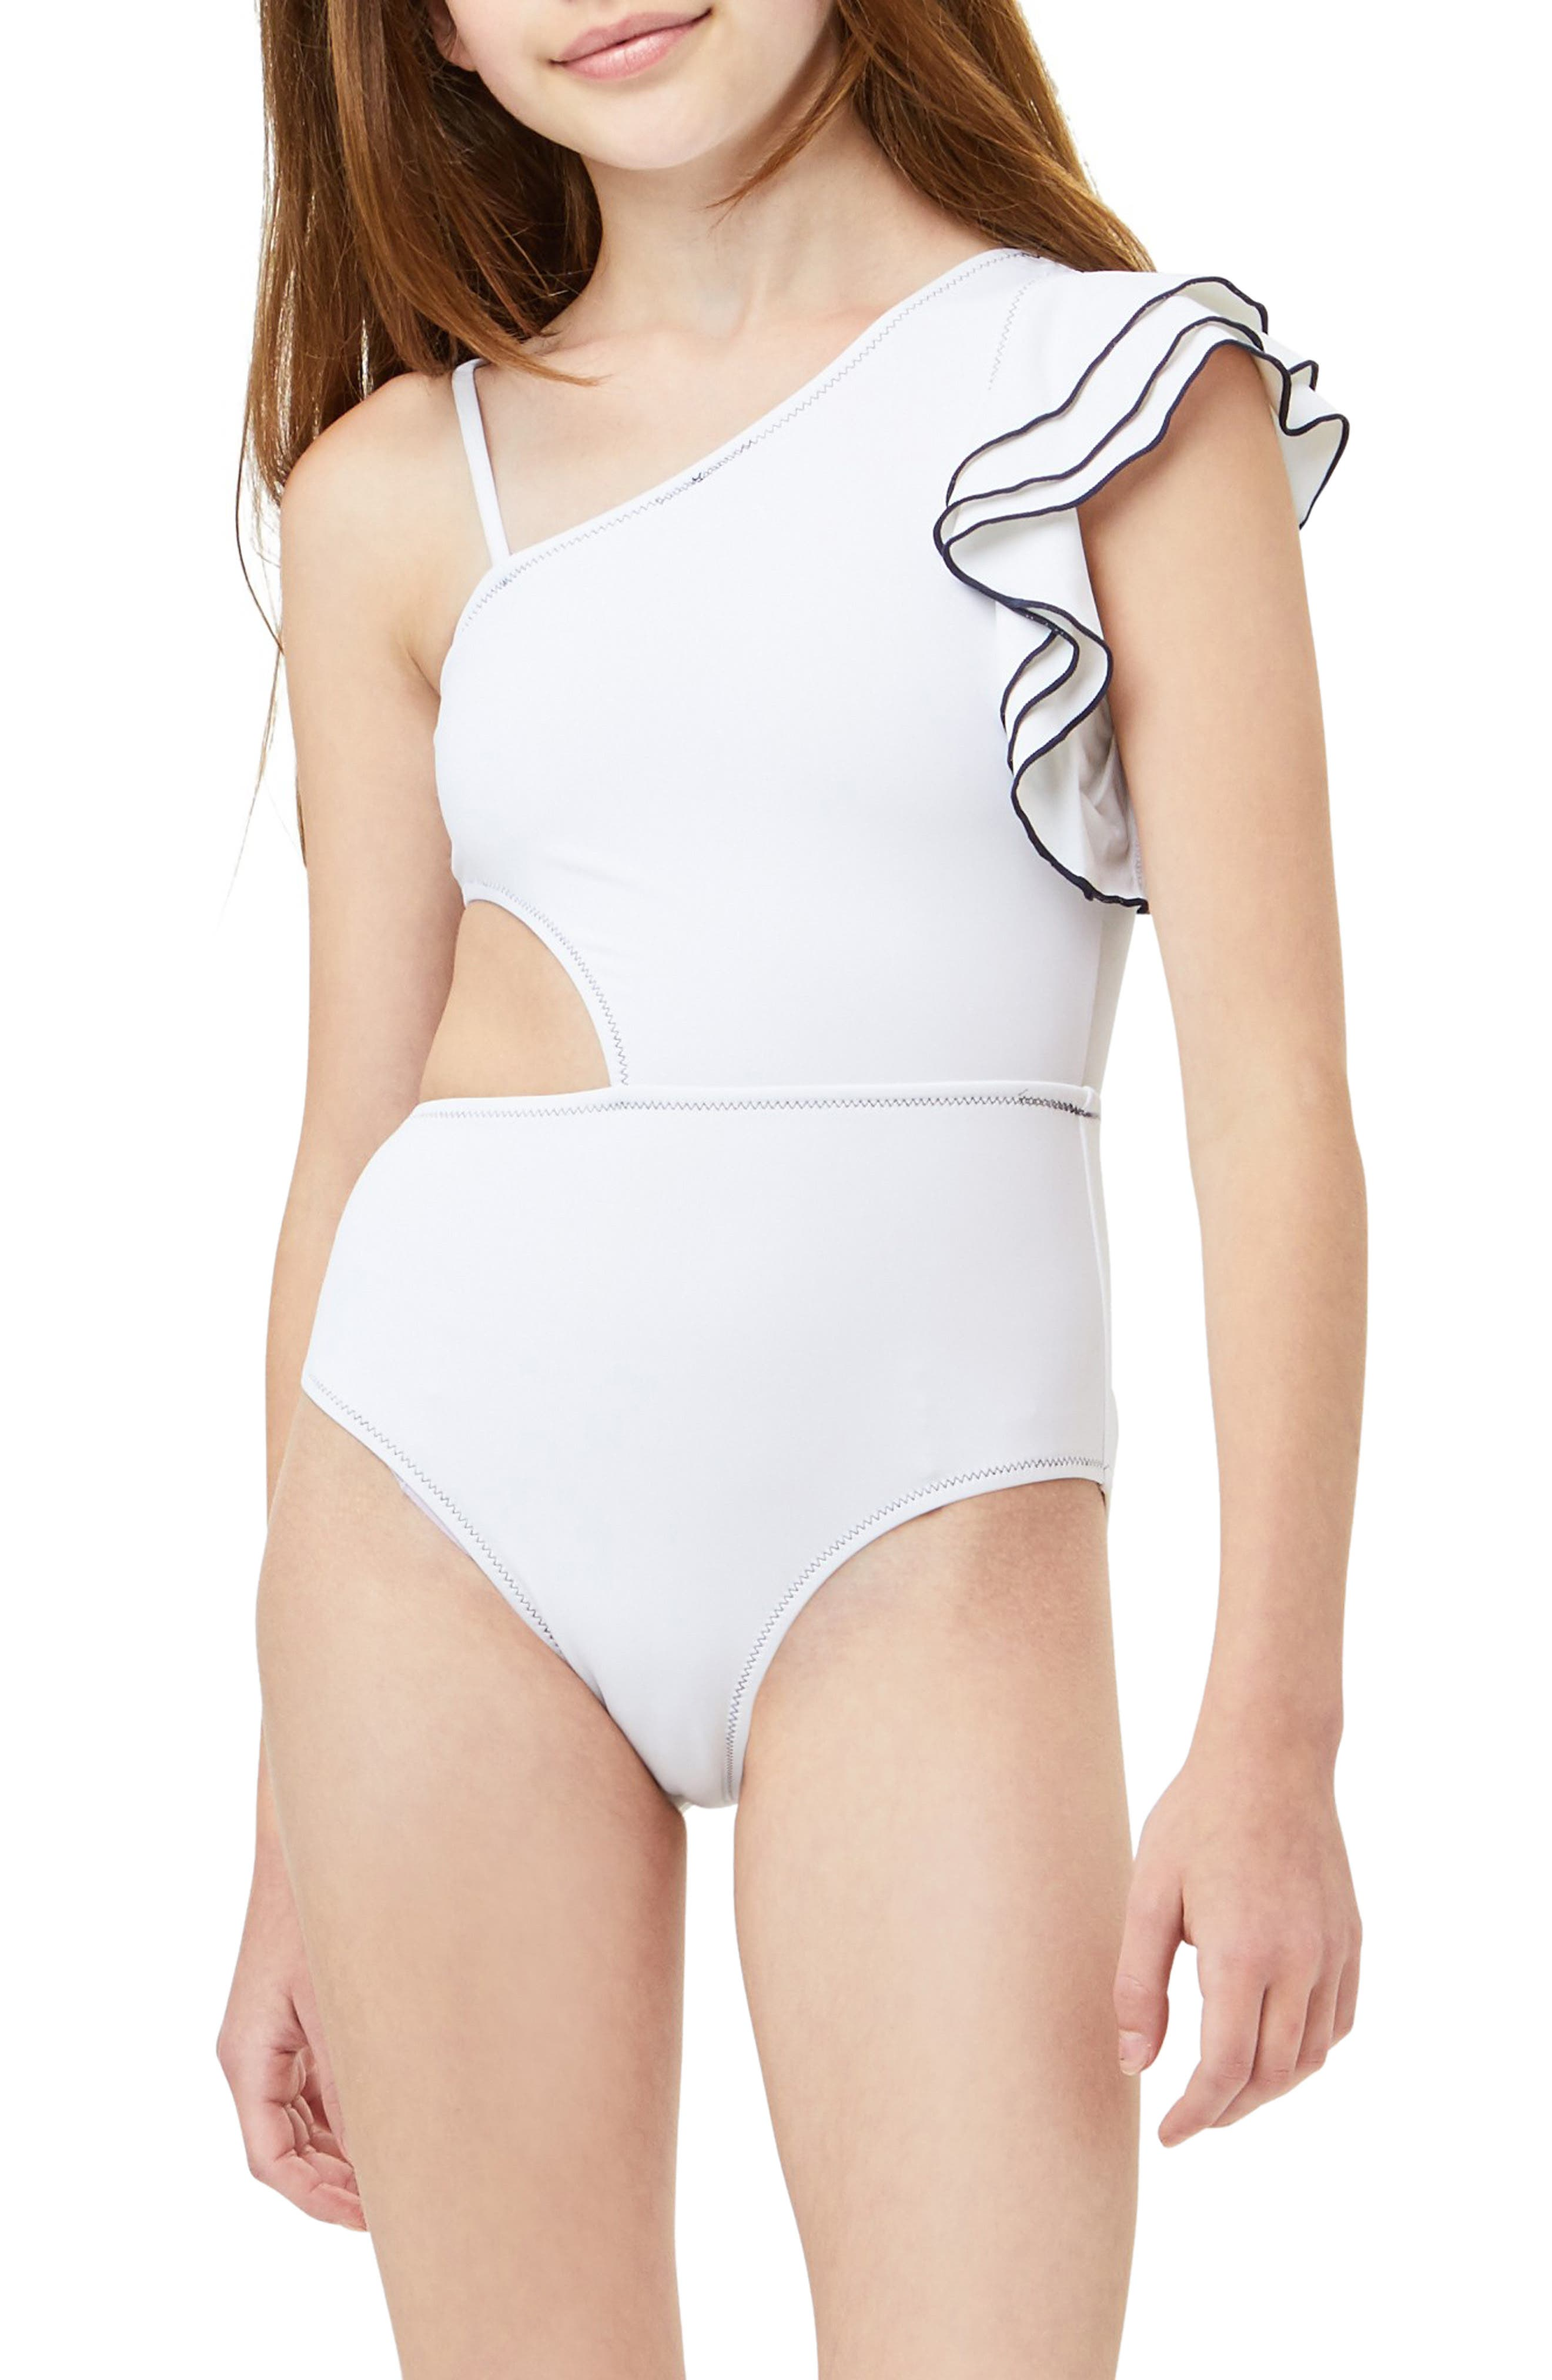 Heart And Harmony Girls Spaghetti Strap Romper Swimsuit Cover Up